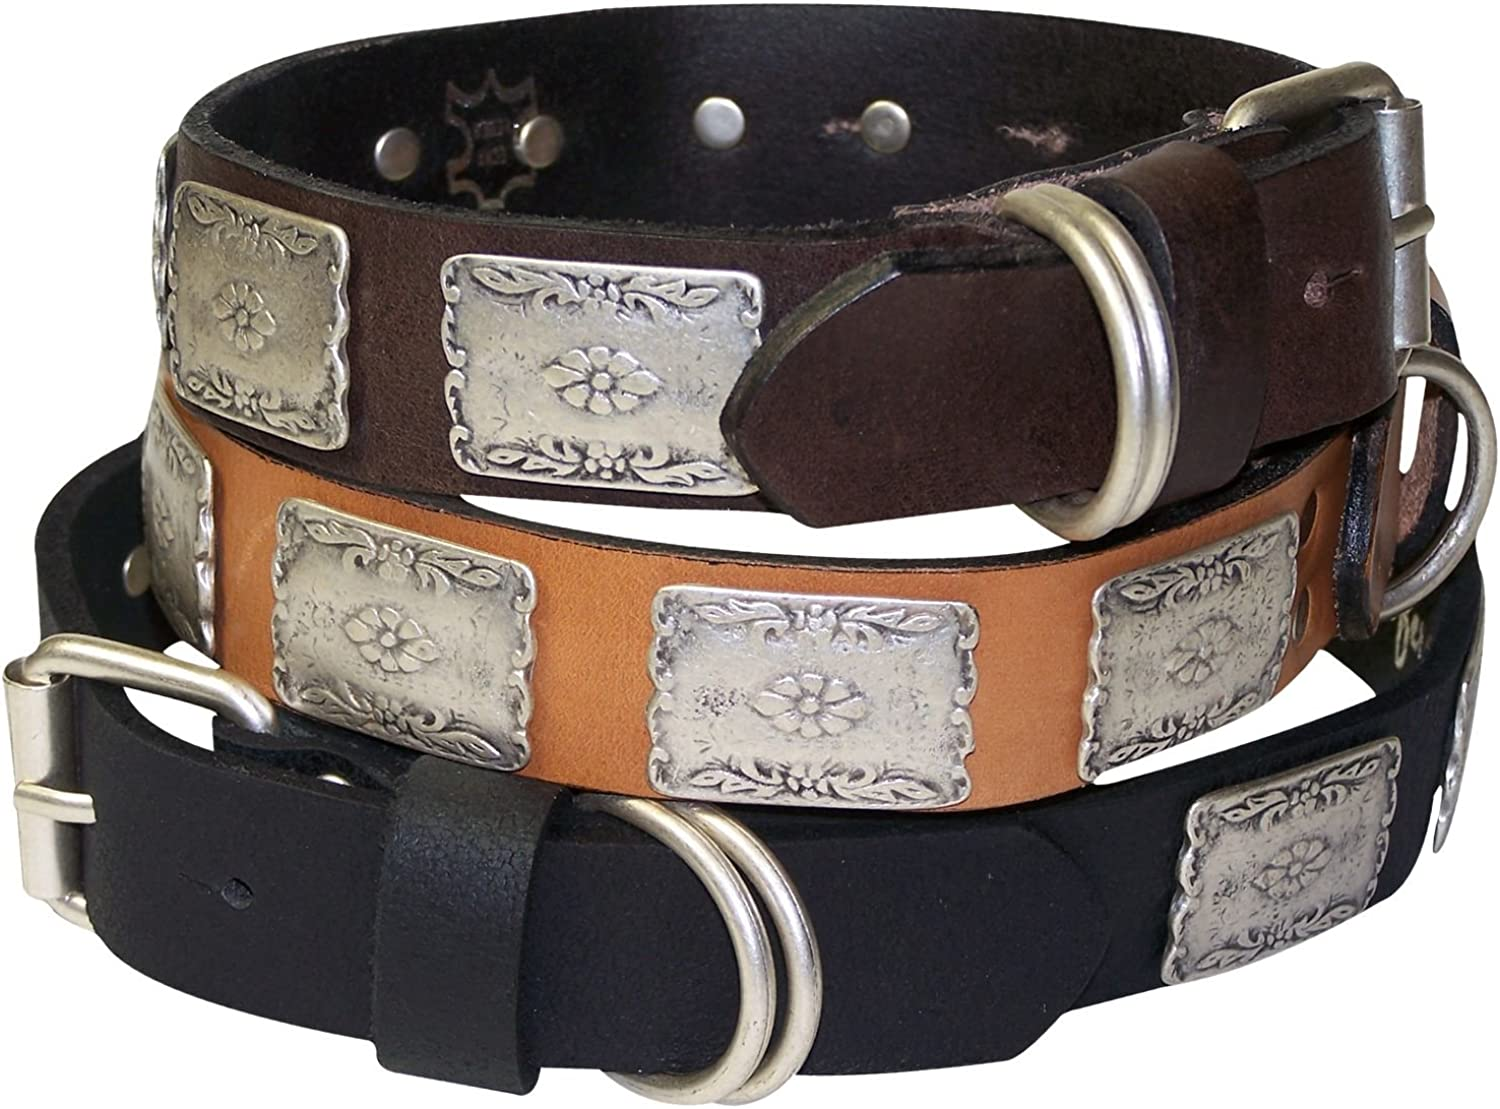 Fronhofer Dog collar, natural leather, Westernstyle antique silver details, color Brown, Size XL neck 21.624.4 (5562 cm)